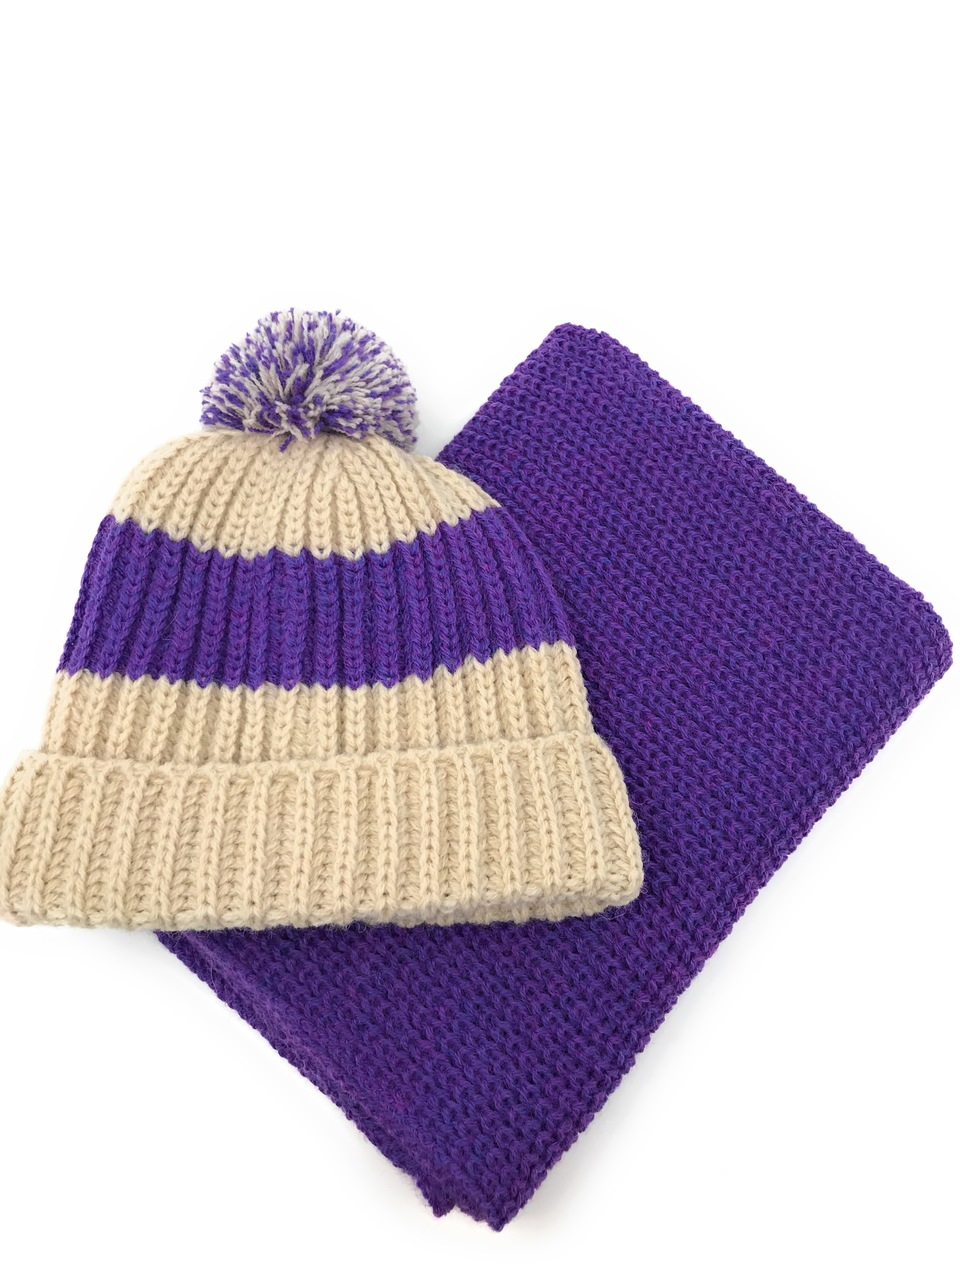 Vintage Beanie / Tossle Cap - Alpaca & Acrylic Sugar Plum featured with matching snood